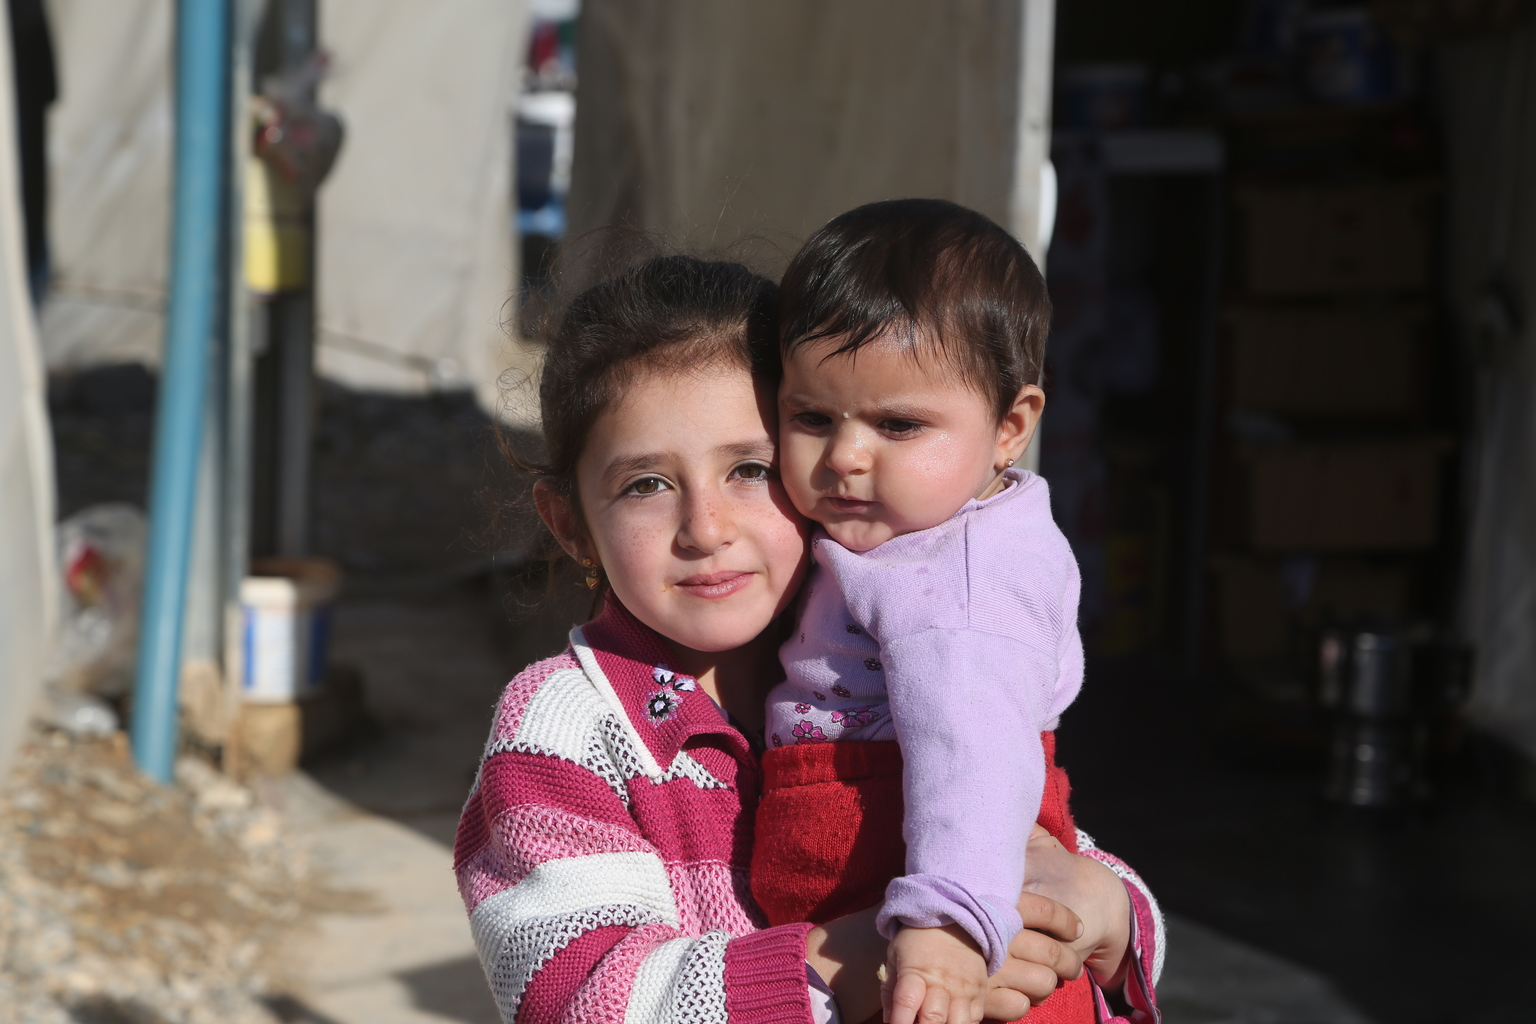 A girl carrying her baby sister in Nizip 1 refugee camp, Gaziantep, southern Turkey. Nizip 1 camp is home to over 10,000 Syrian refugees